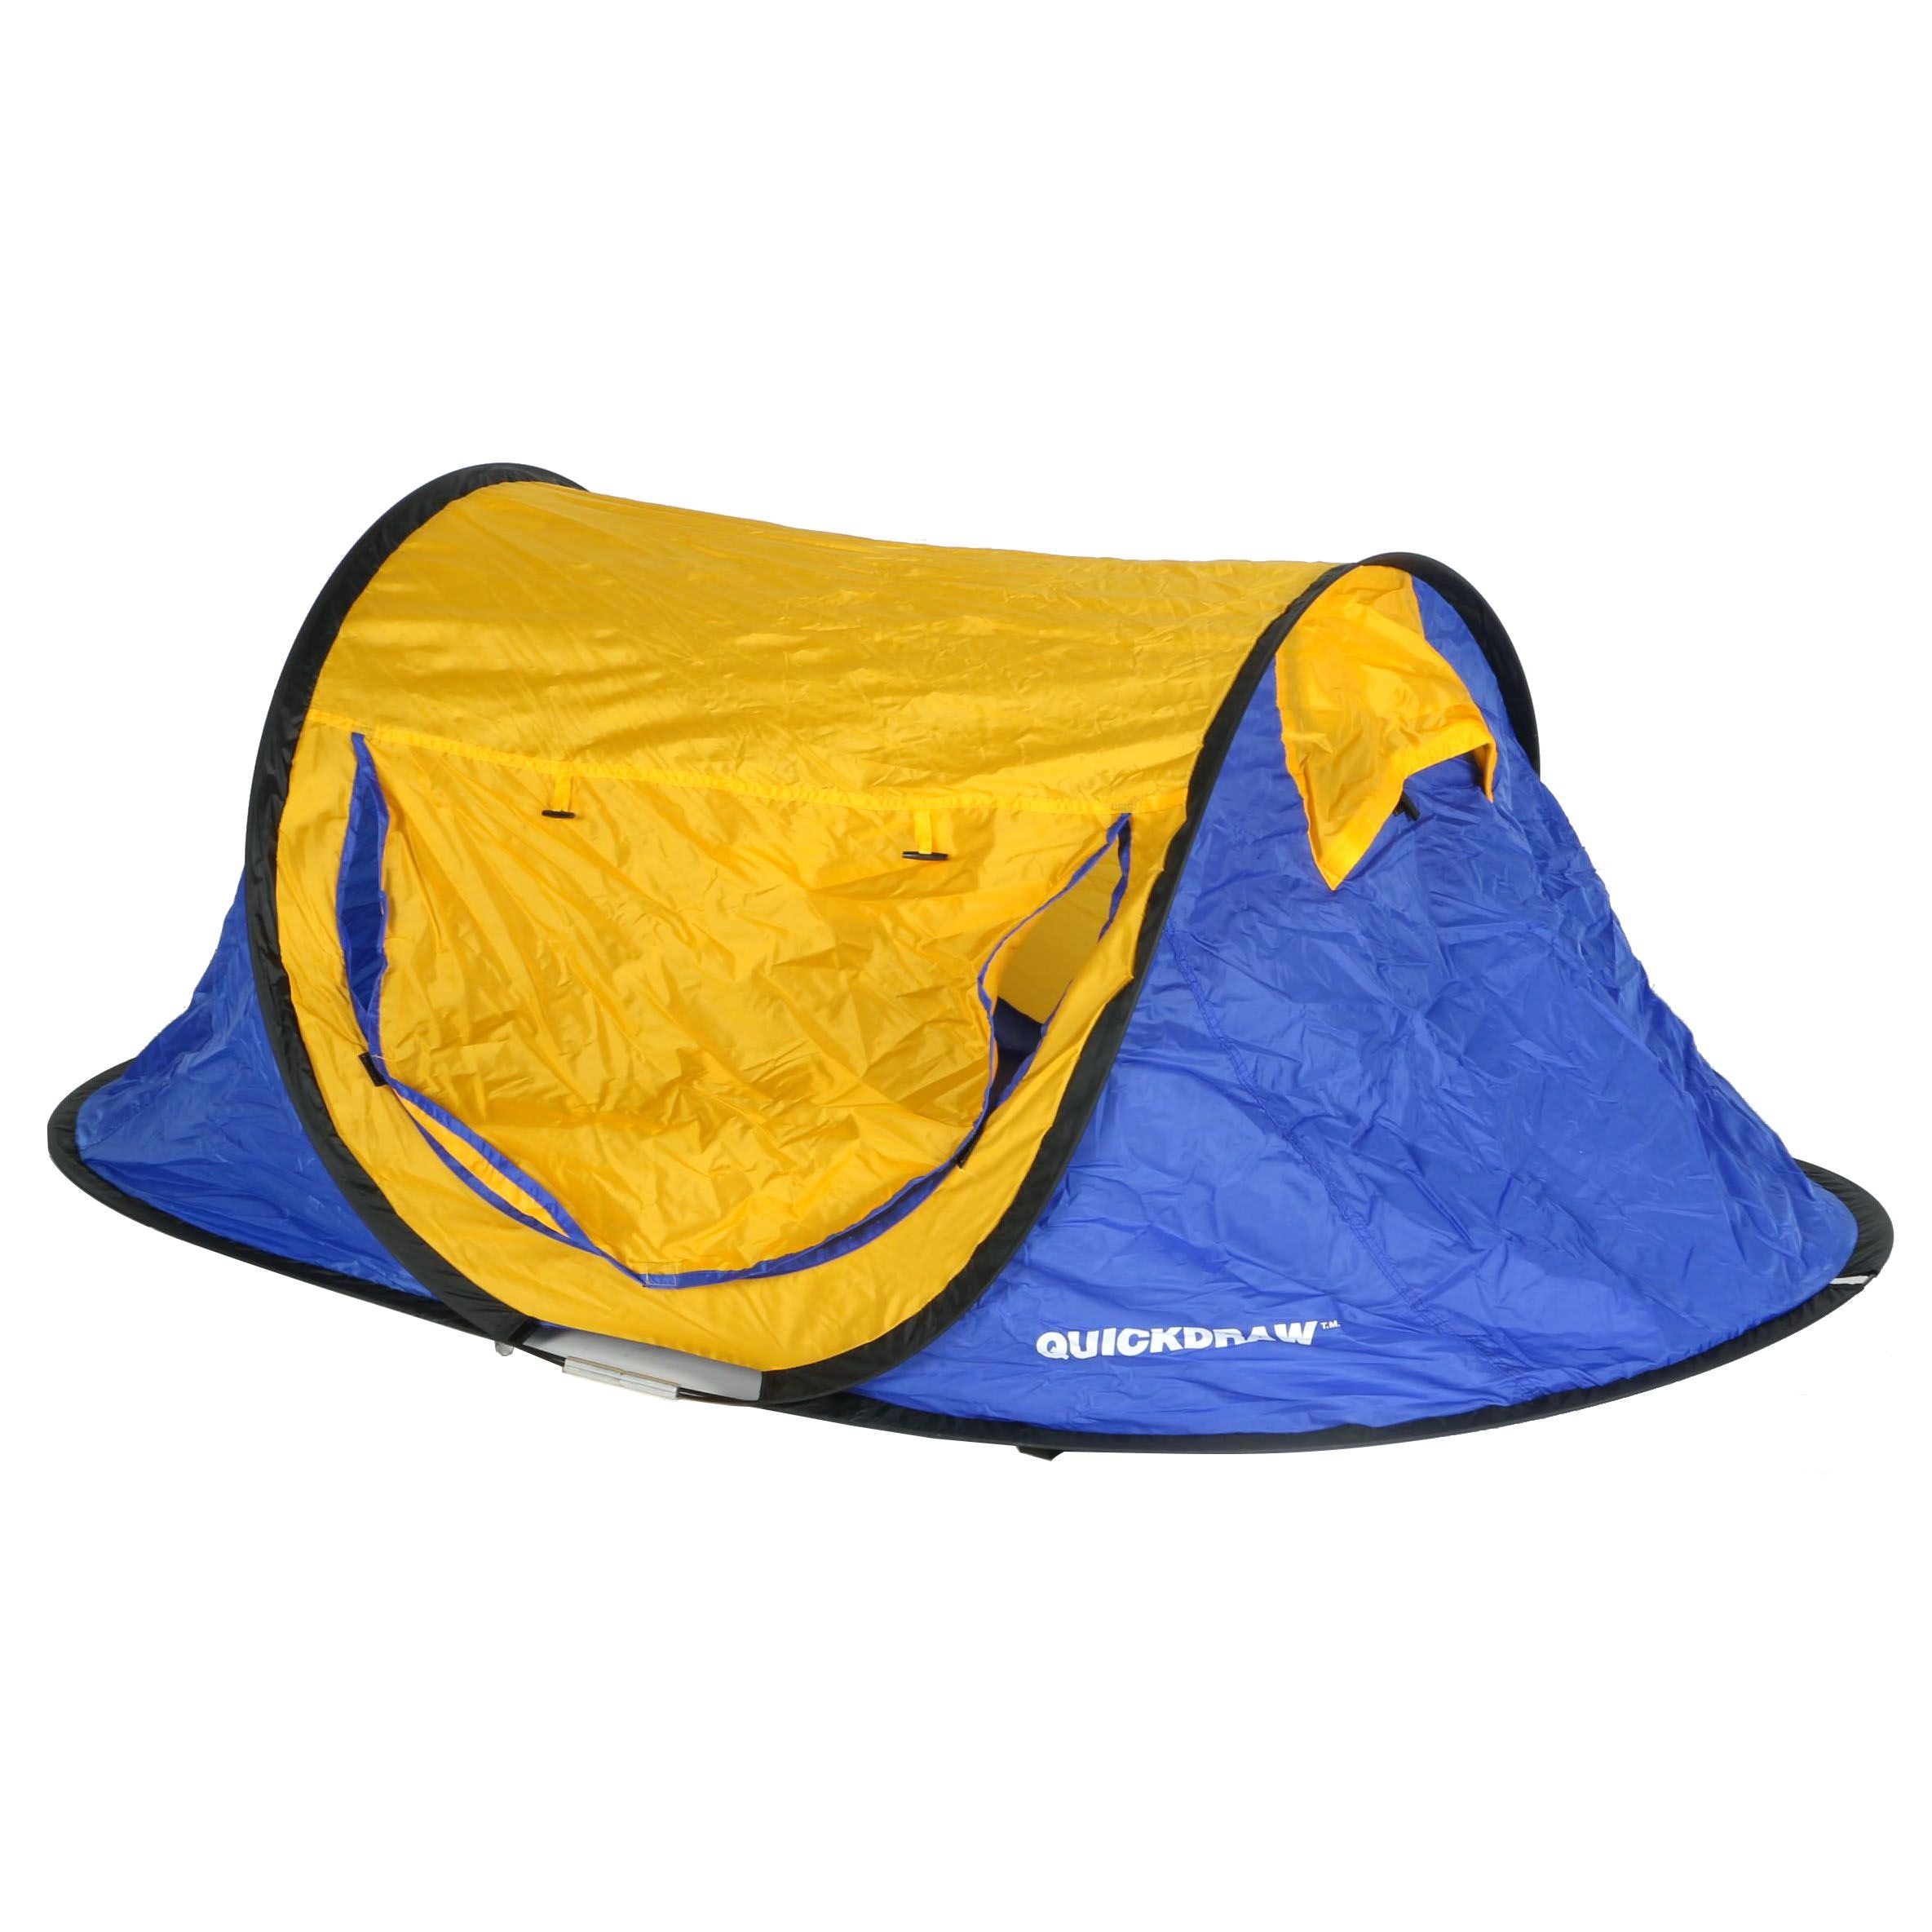 Quickdraw  Little Ranger  Self-Erecting Backpacker Tent ...  sc 1 st  EBTH.com & Quickdraw